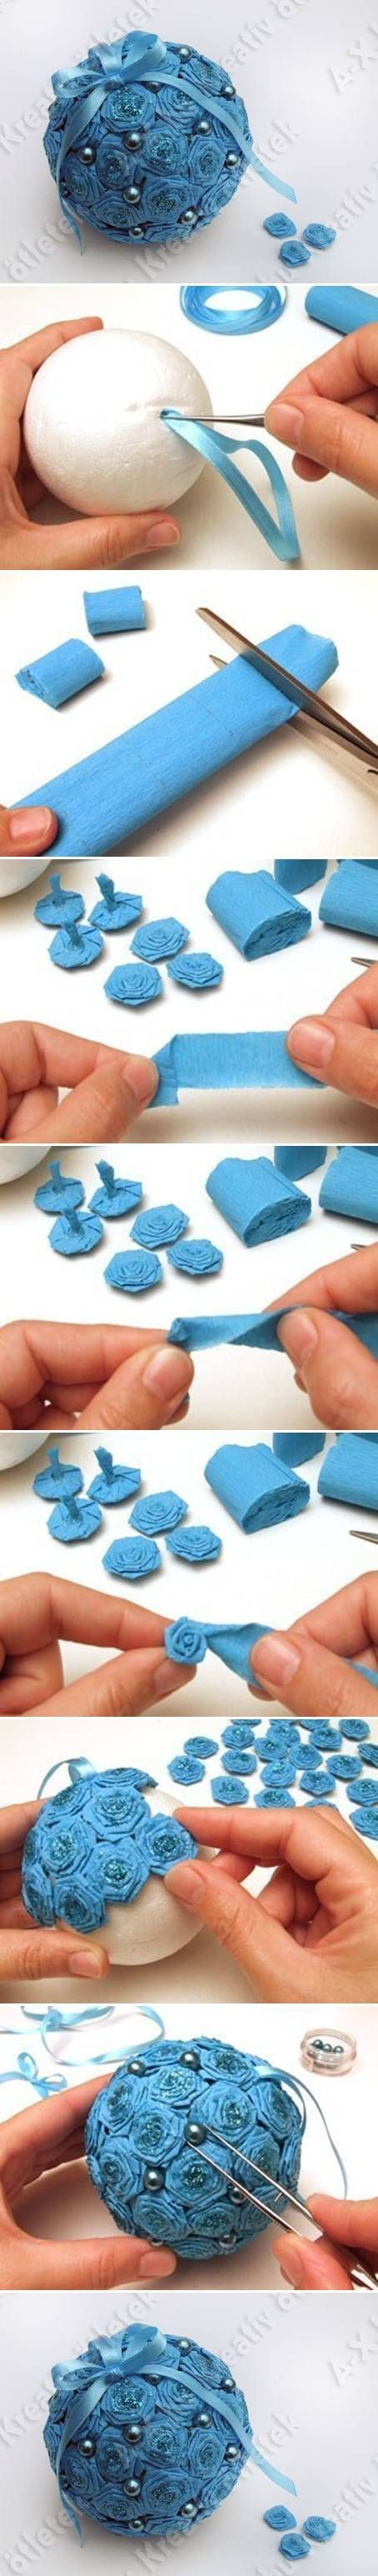 DIY Styrofoam Paper Rose Ball Ornament - (wonderfuldiy)